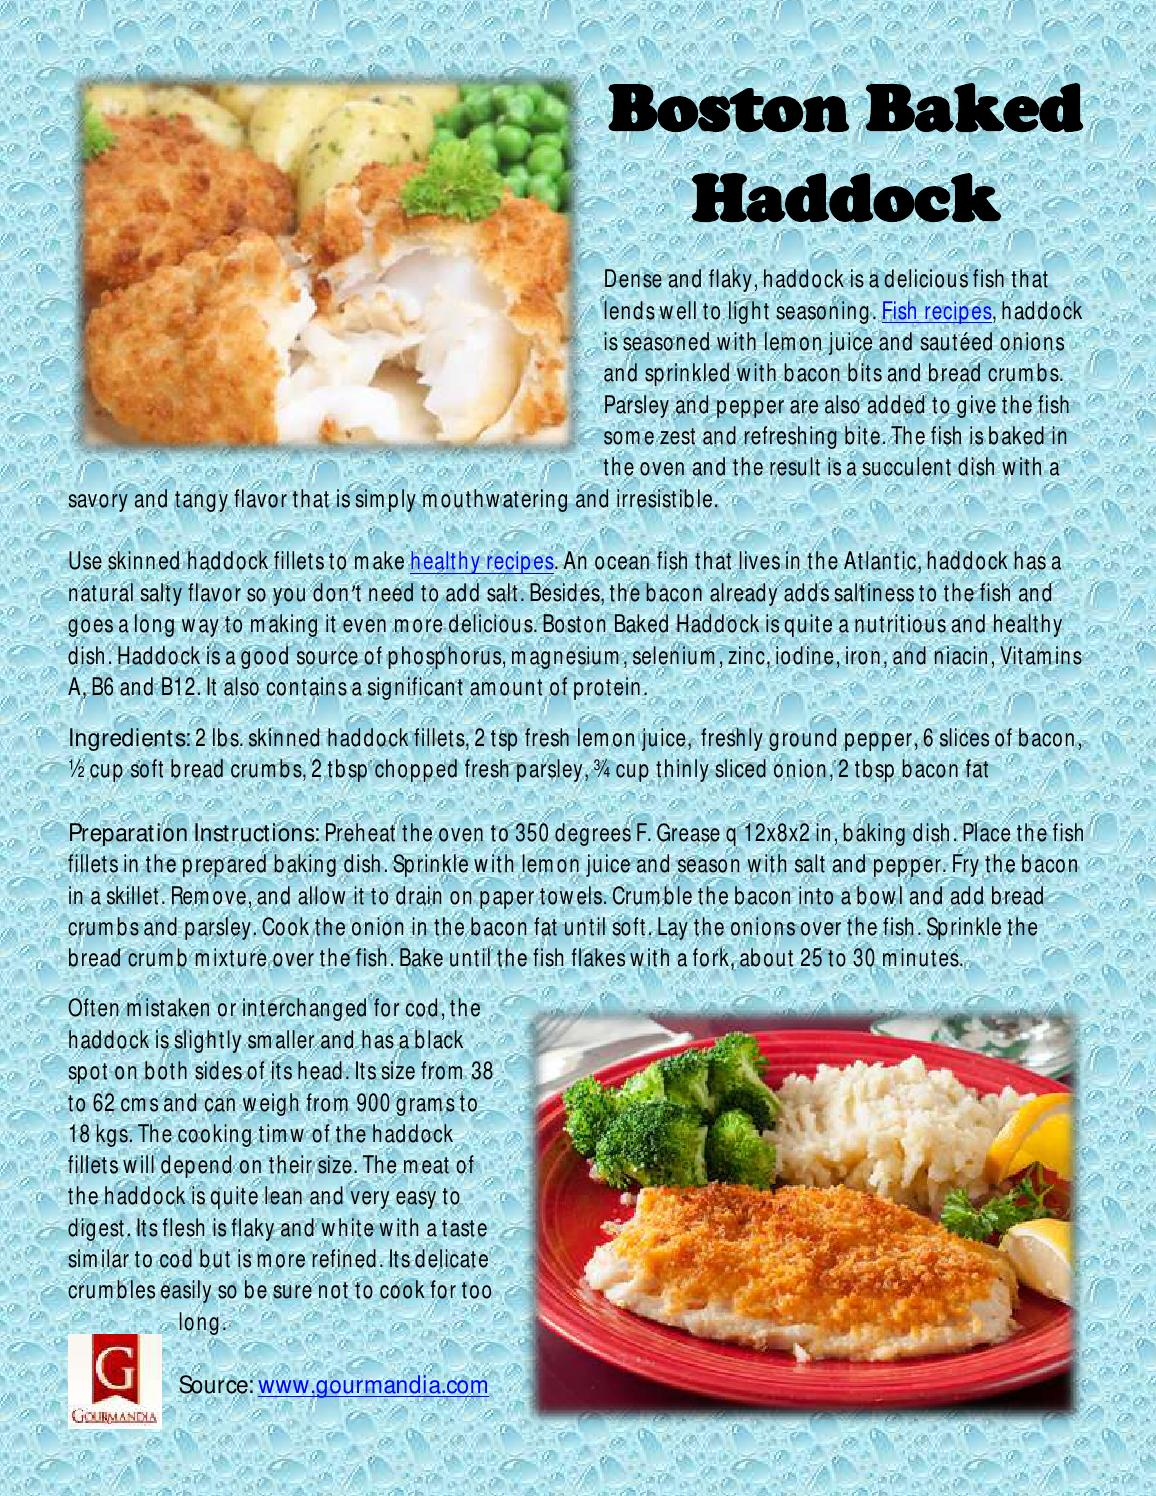 Healthy Way To Cook Haddock Fillets